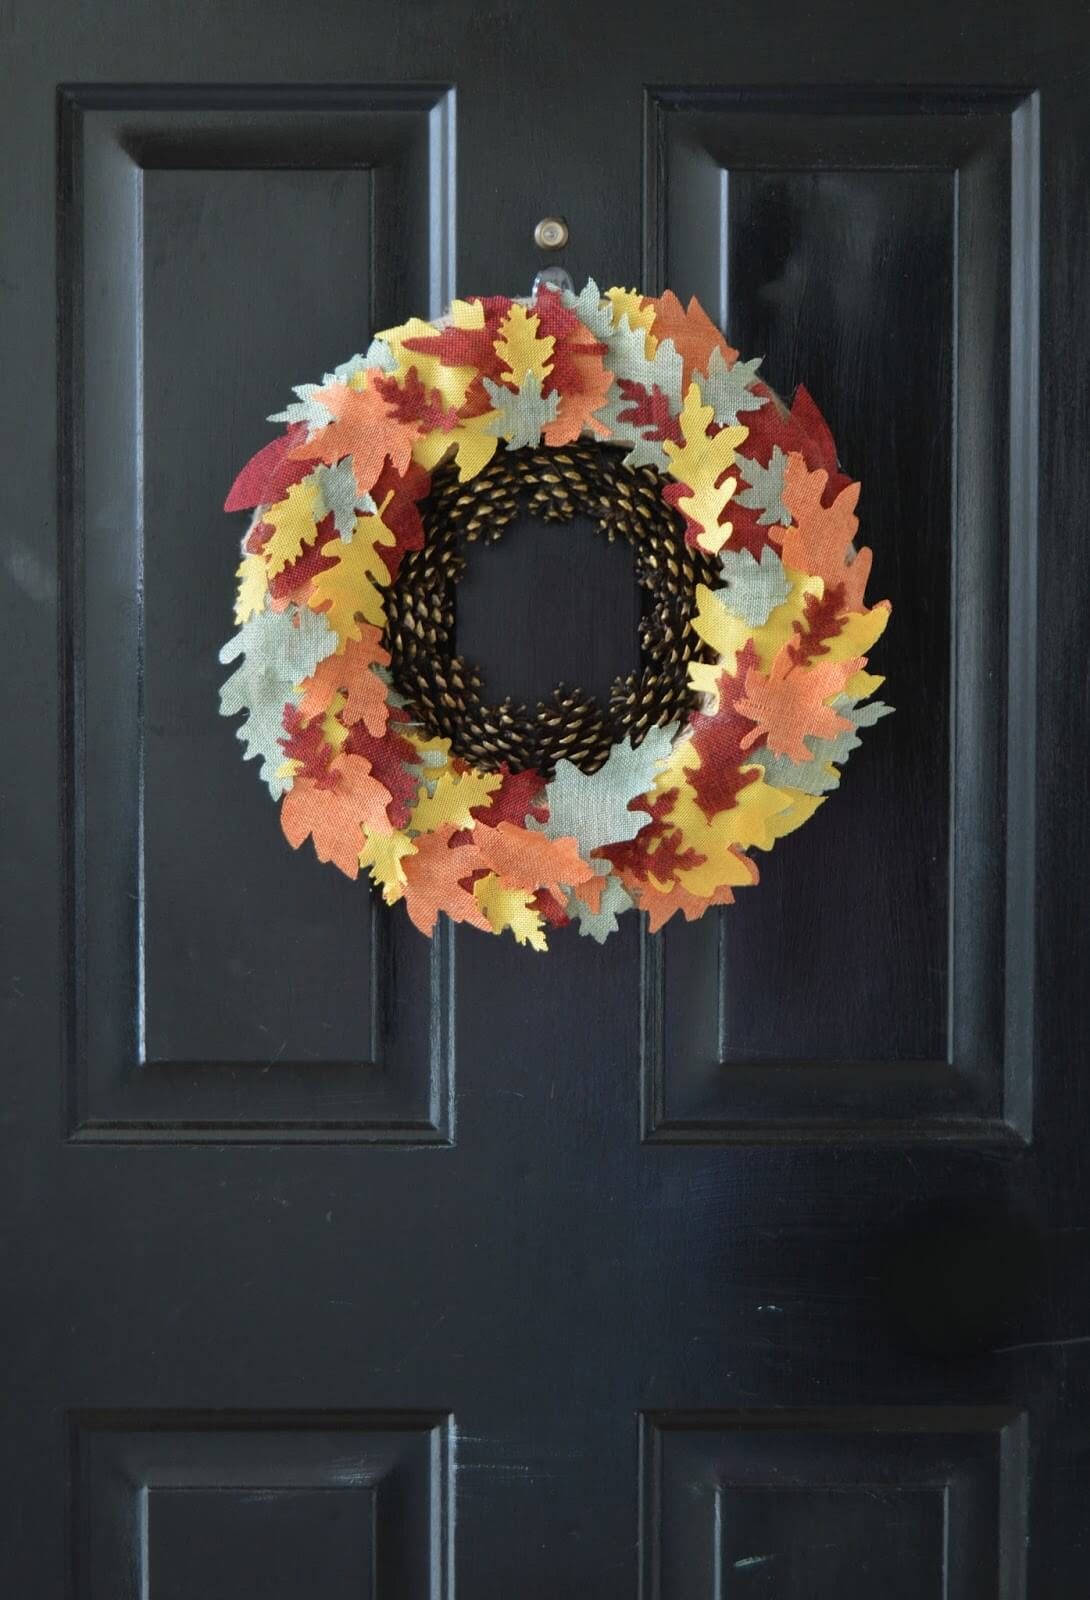 A Fun Fall Crafted Project